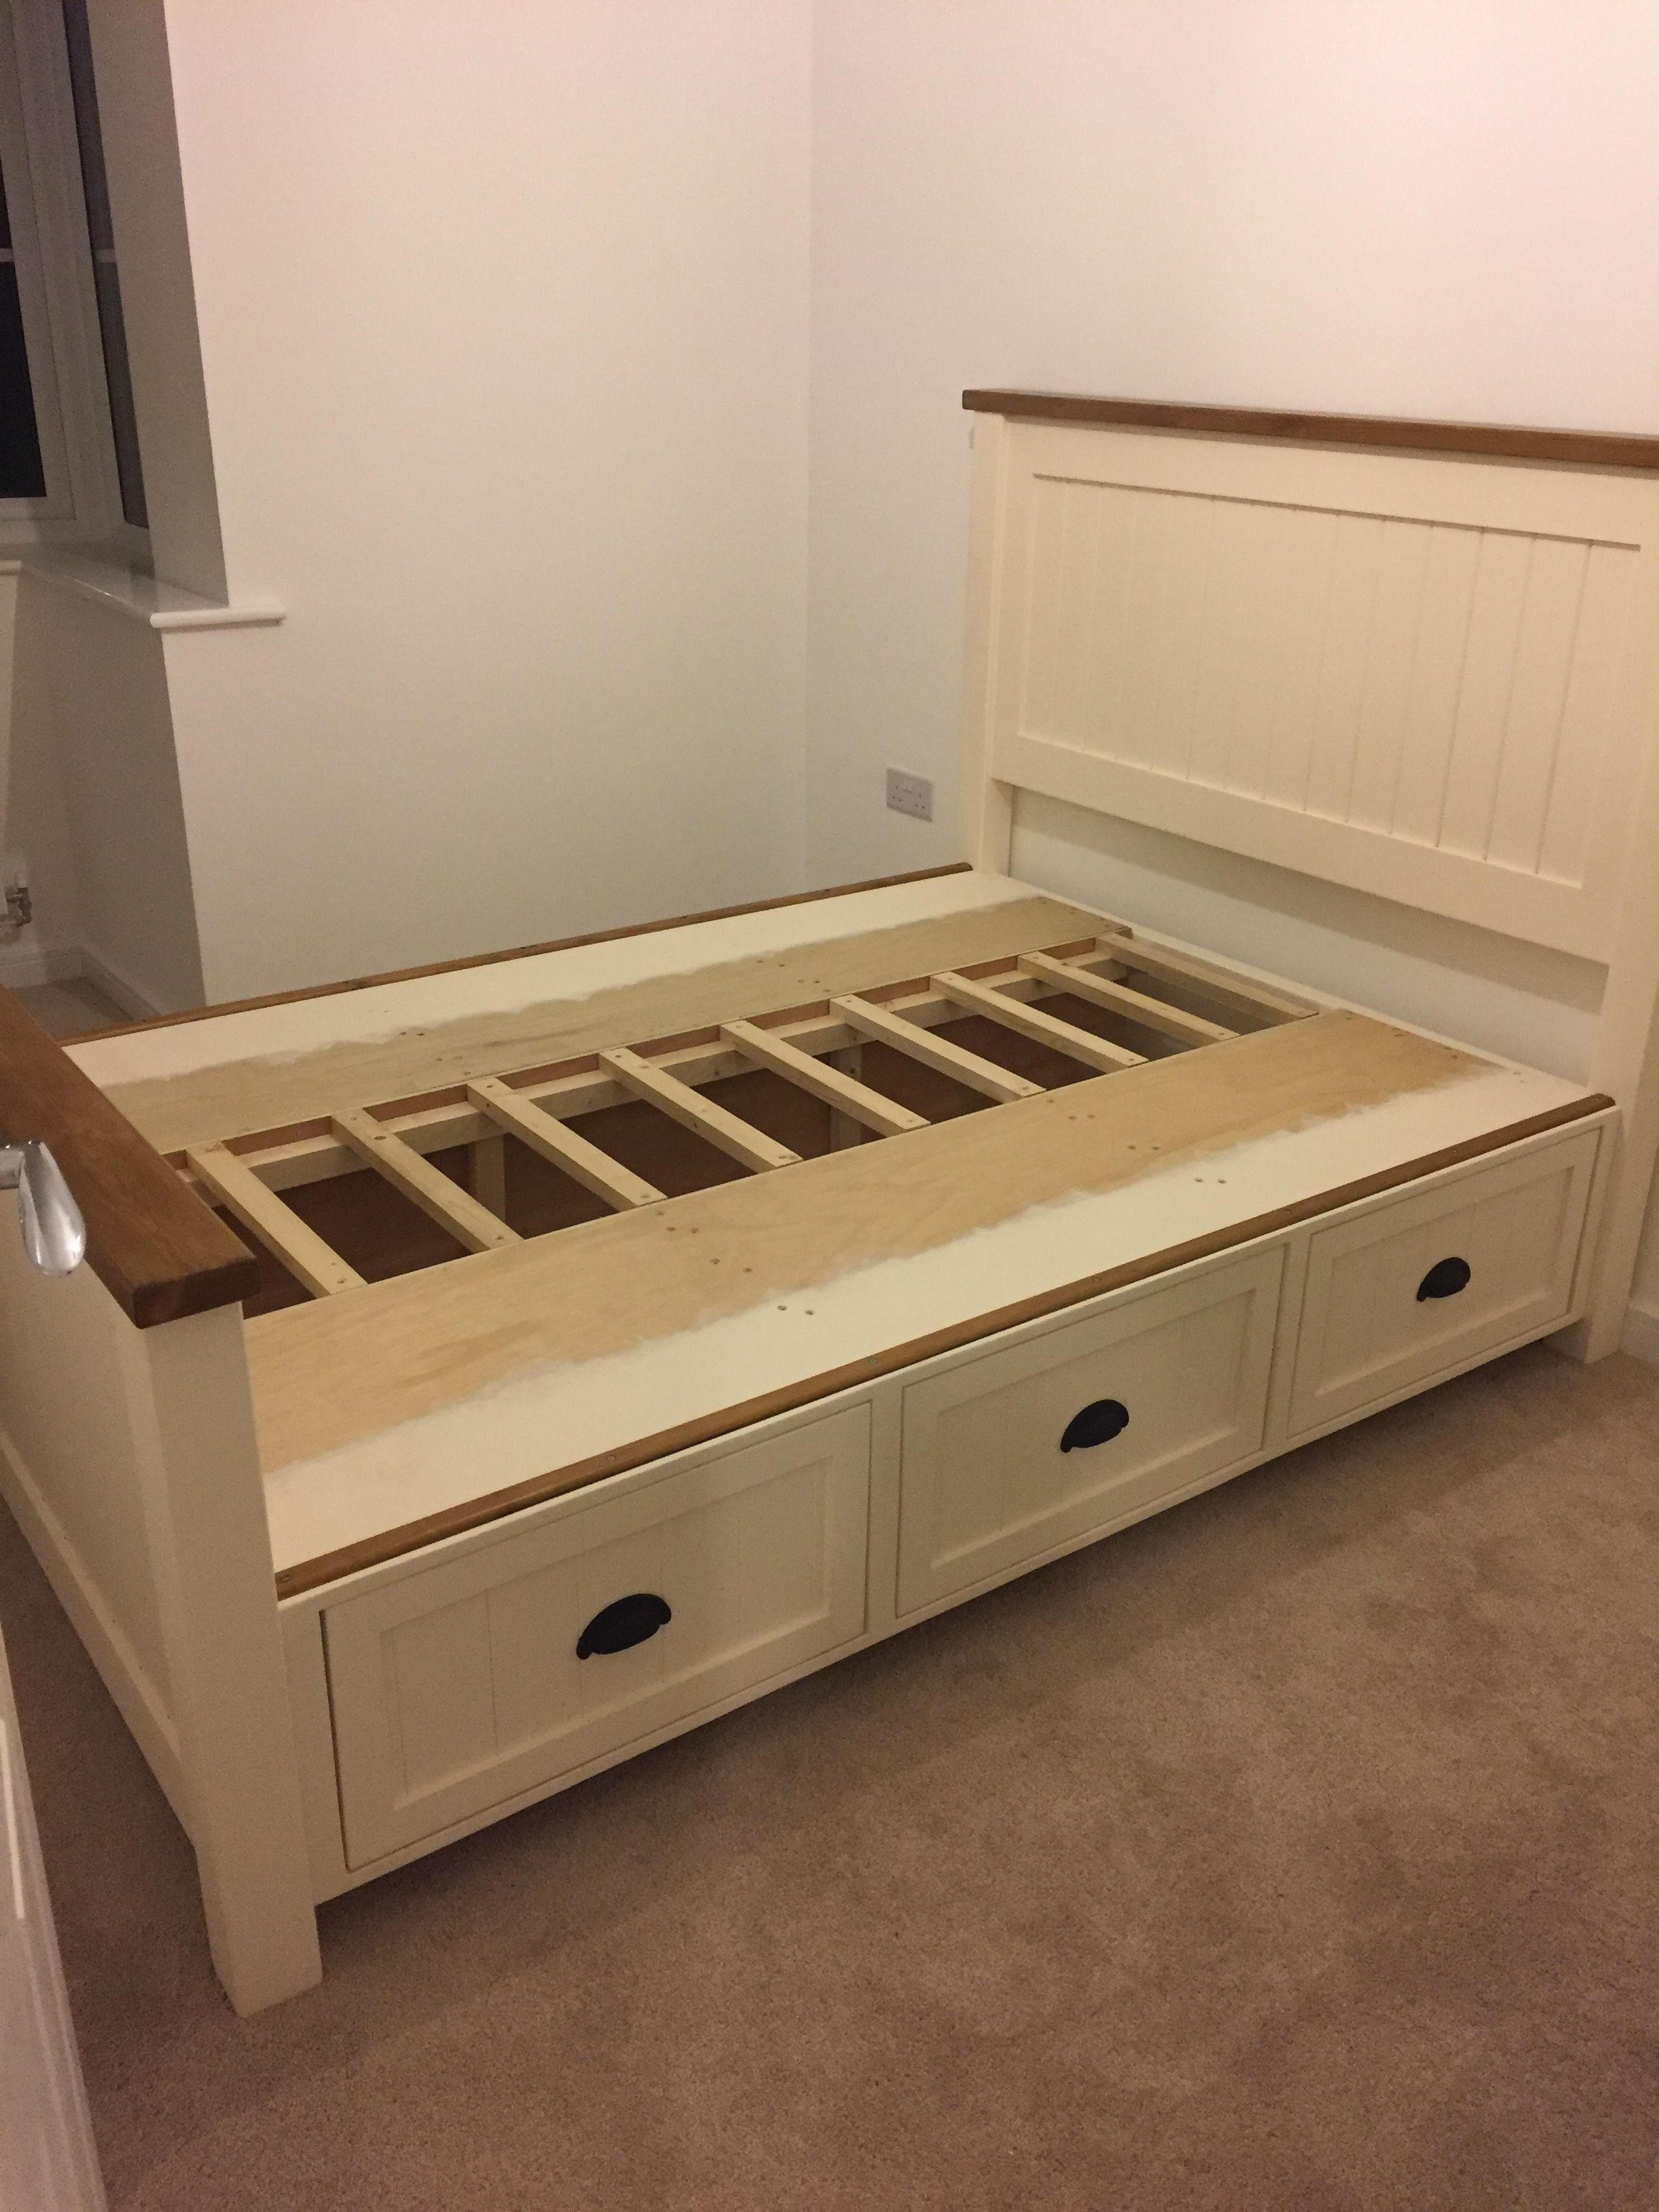 double bed with drawers on Custom Built Farmhouse Double Bed With Storage Drawers Double Bed With Storage Storage Bench Bedroom Bed Storage Drawers